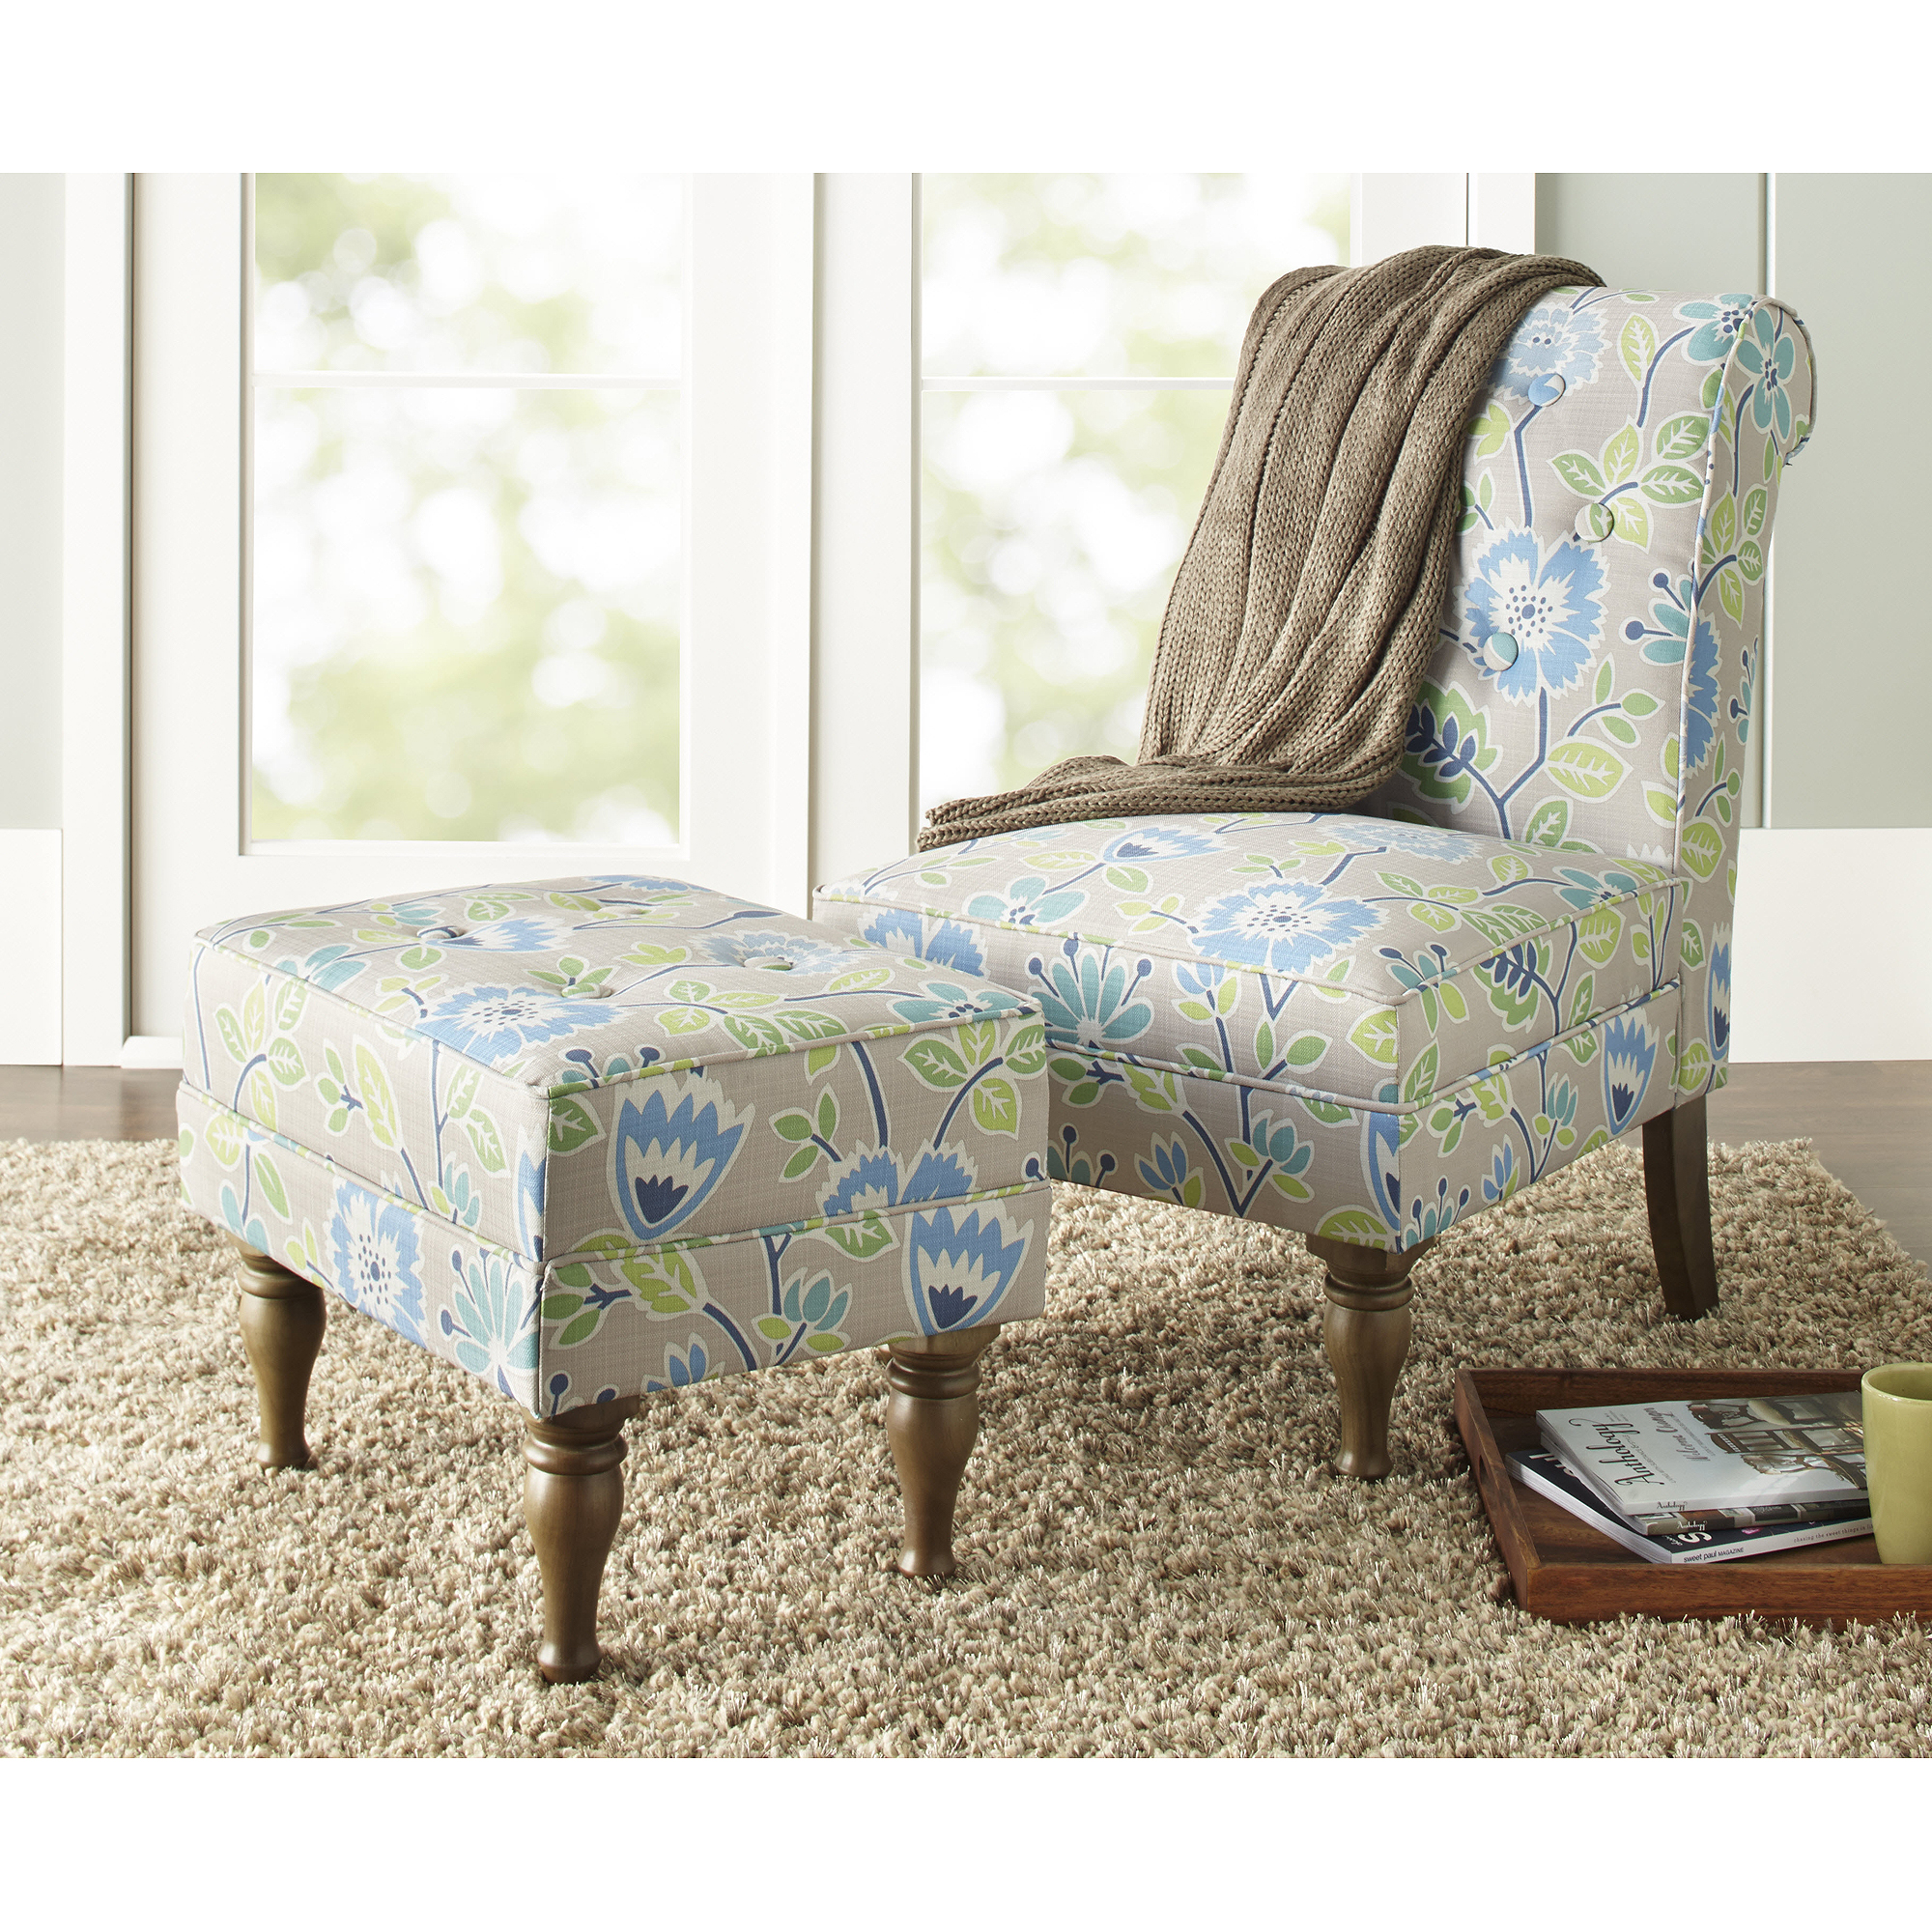 Blue Patterned Chair 10 Spring Street Preston Floral Chair Blue Walmart